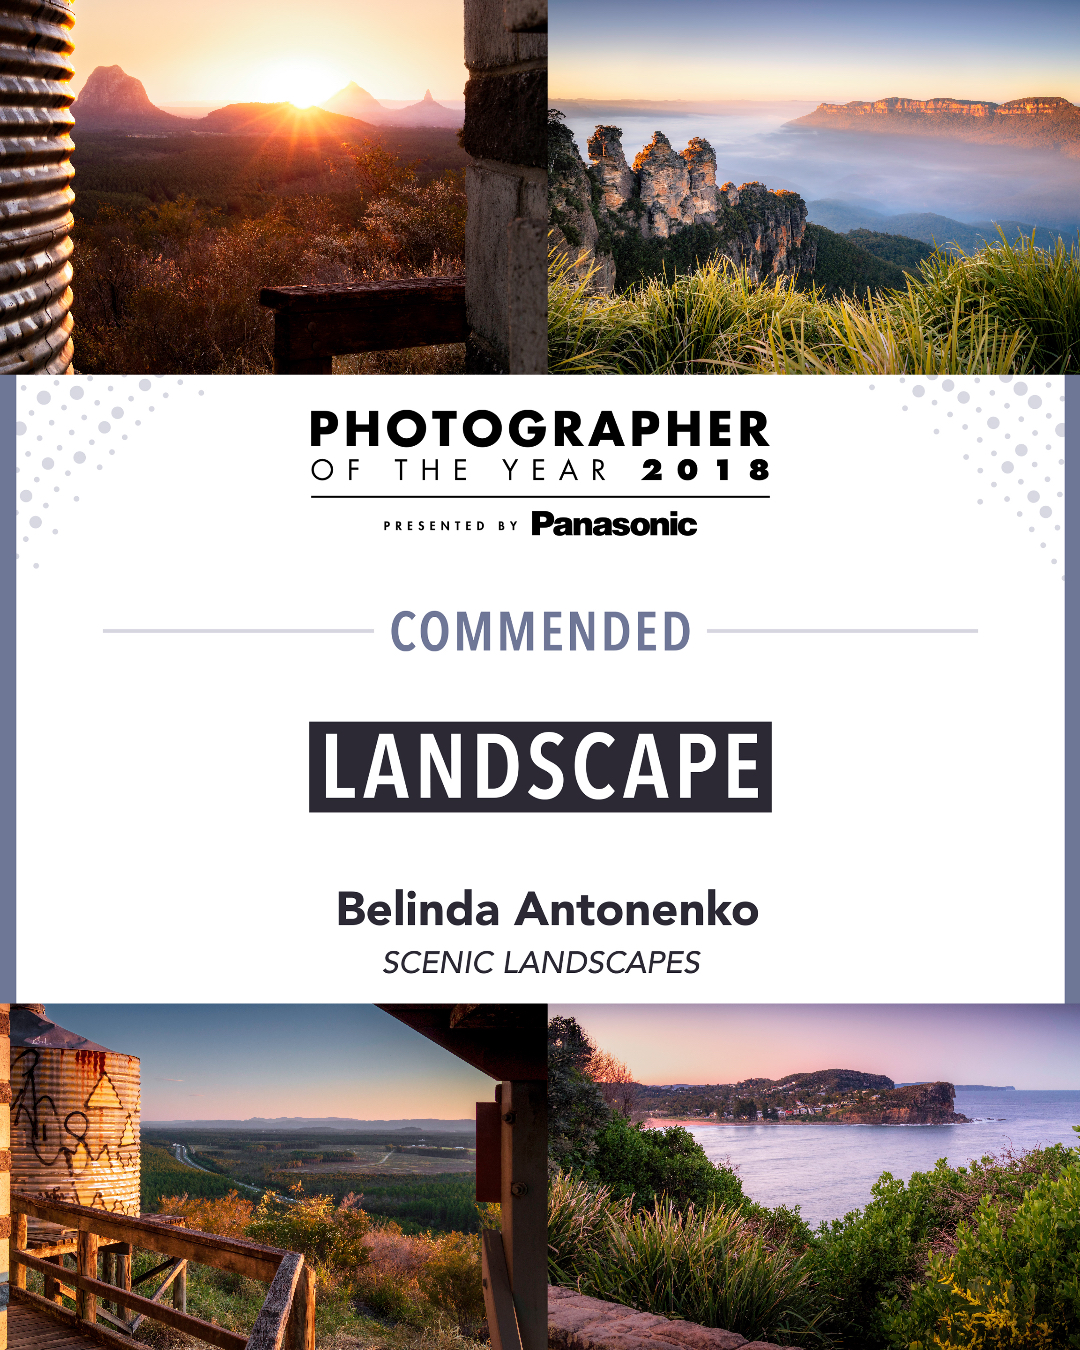 Photographer Of The Year Award - Scenic Landscapes